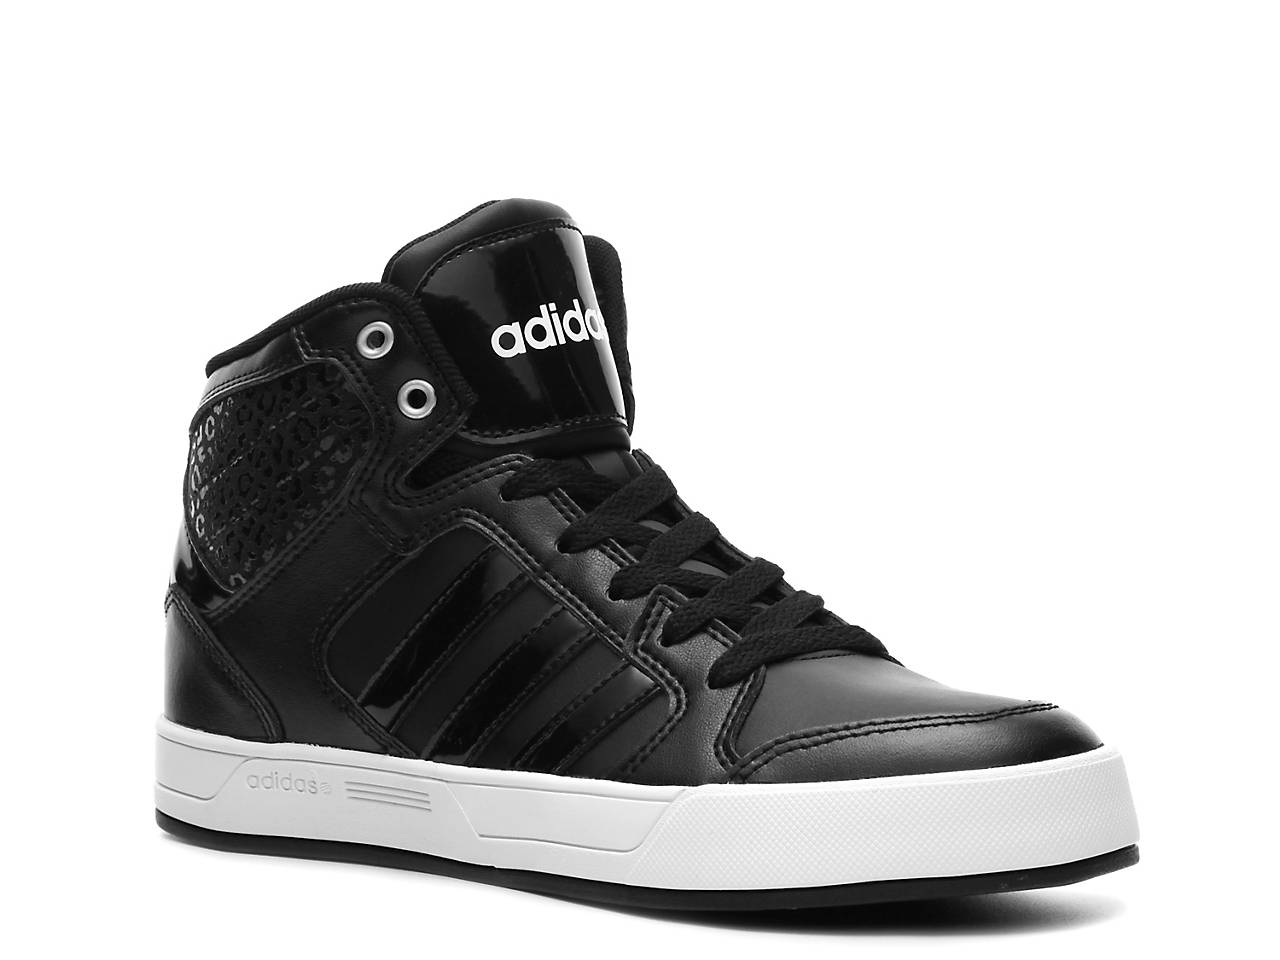 Raleigh High Adidas Neo Sneaker Women's Top ShoesDsw 34jL5AR